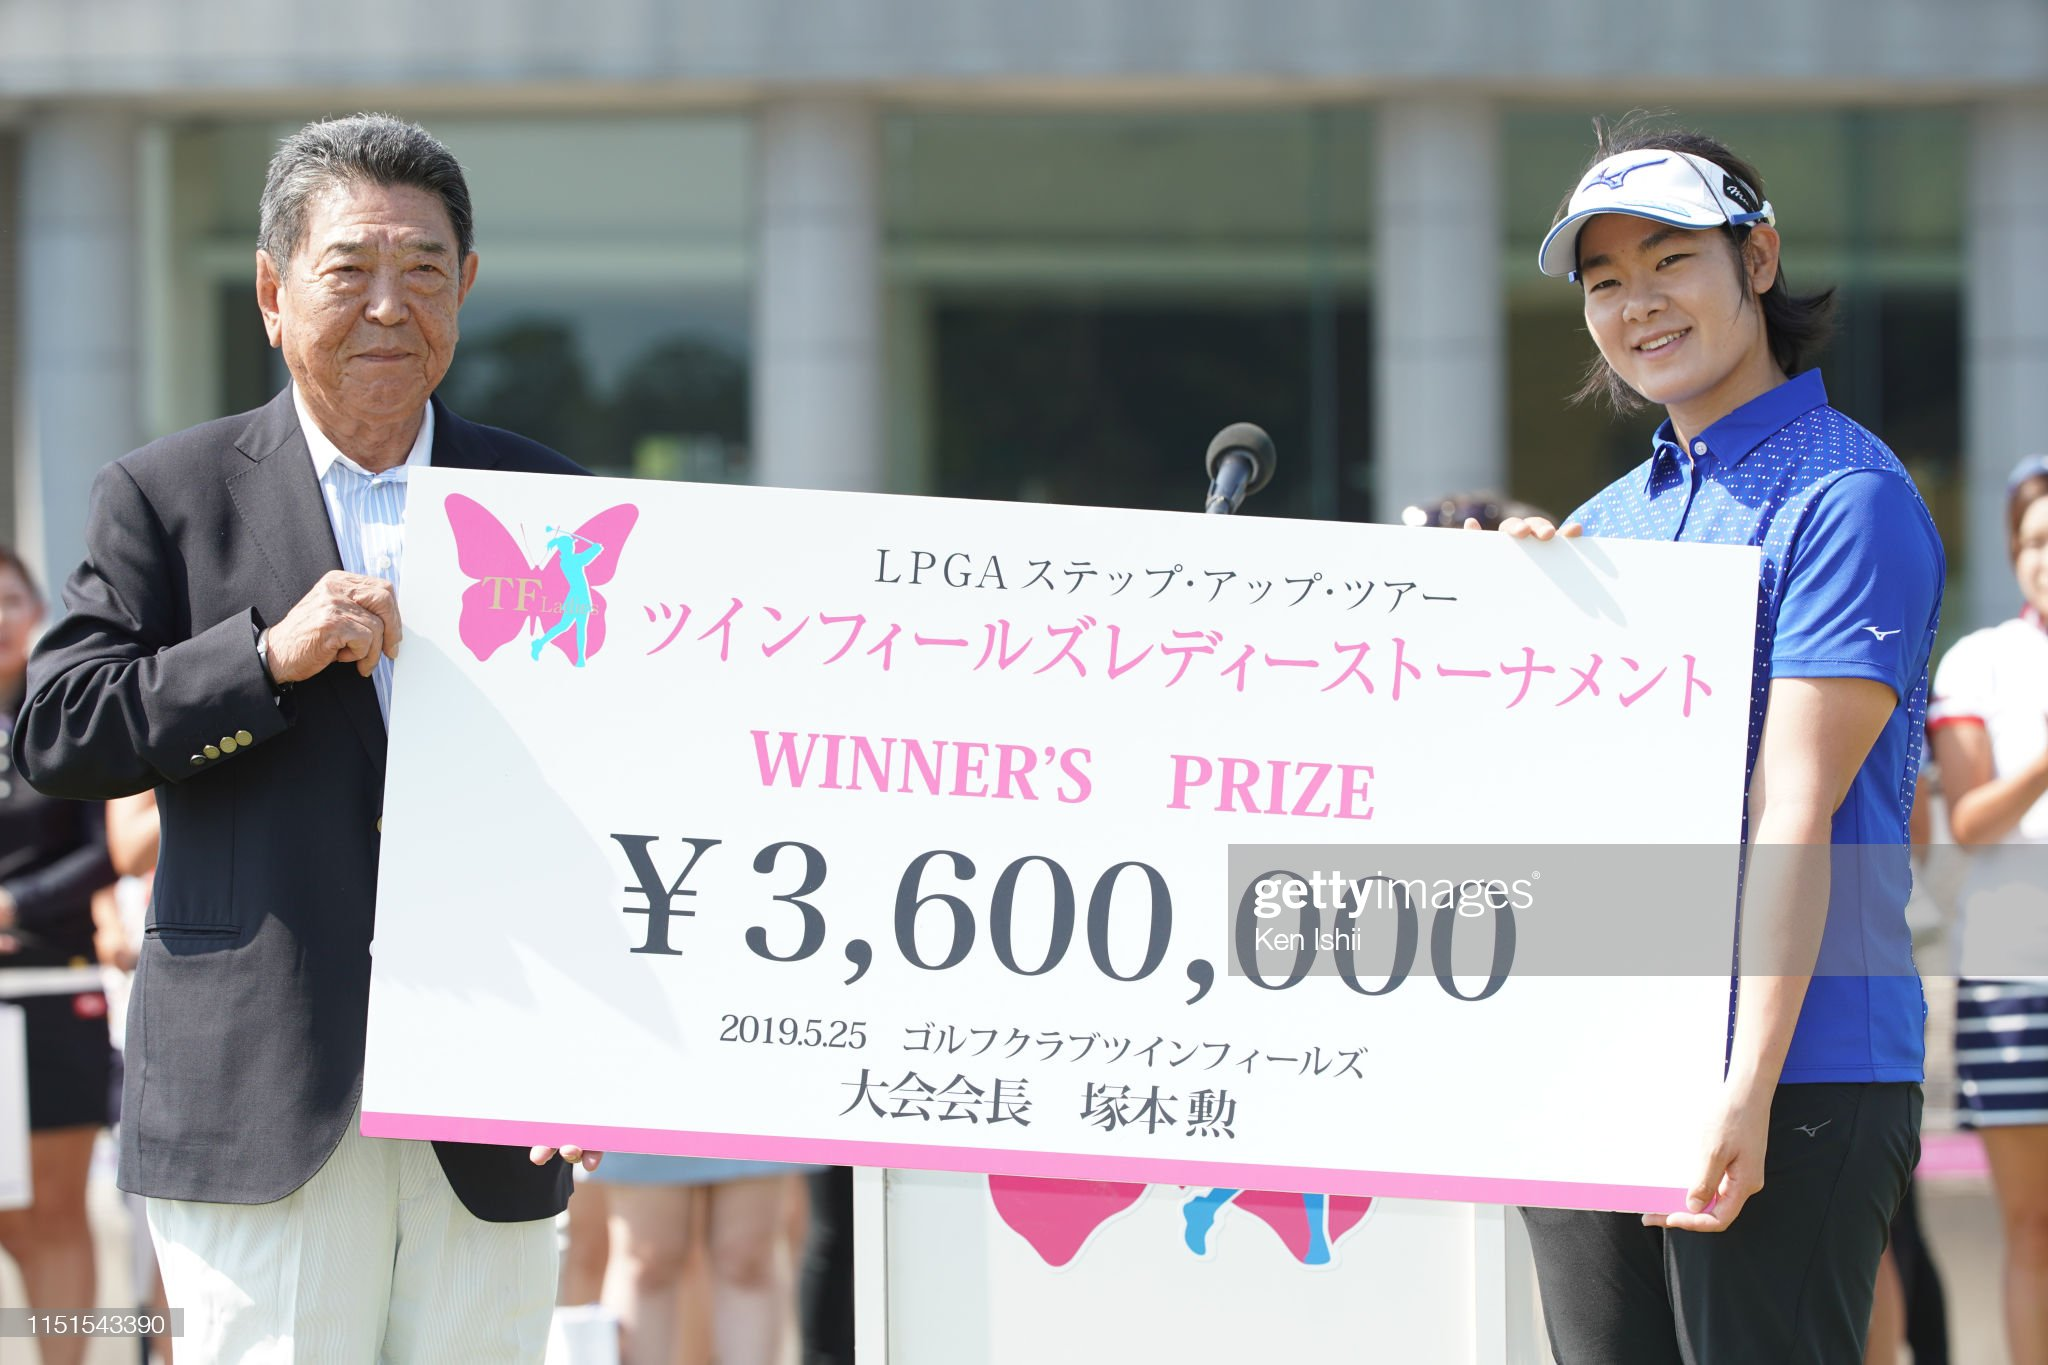 https://media.gettyimages.com/photos/fumika-kawagishi-of-japan-receives-the-cheque-from-kaga-electronics-picture-id1151543390?s=2048x2048